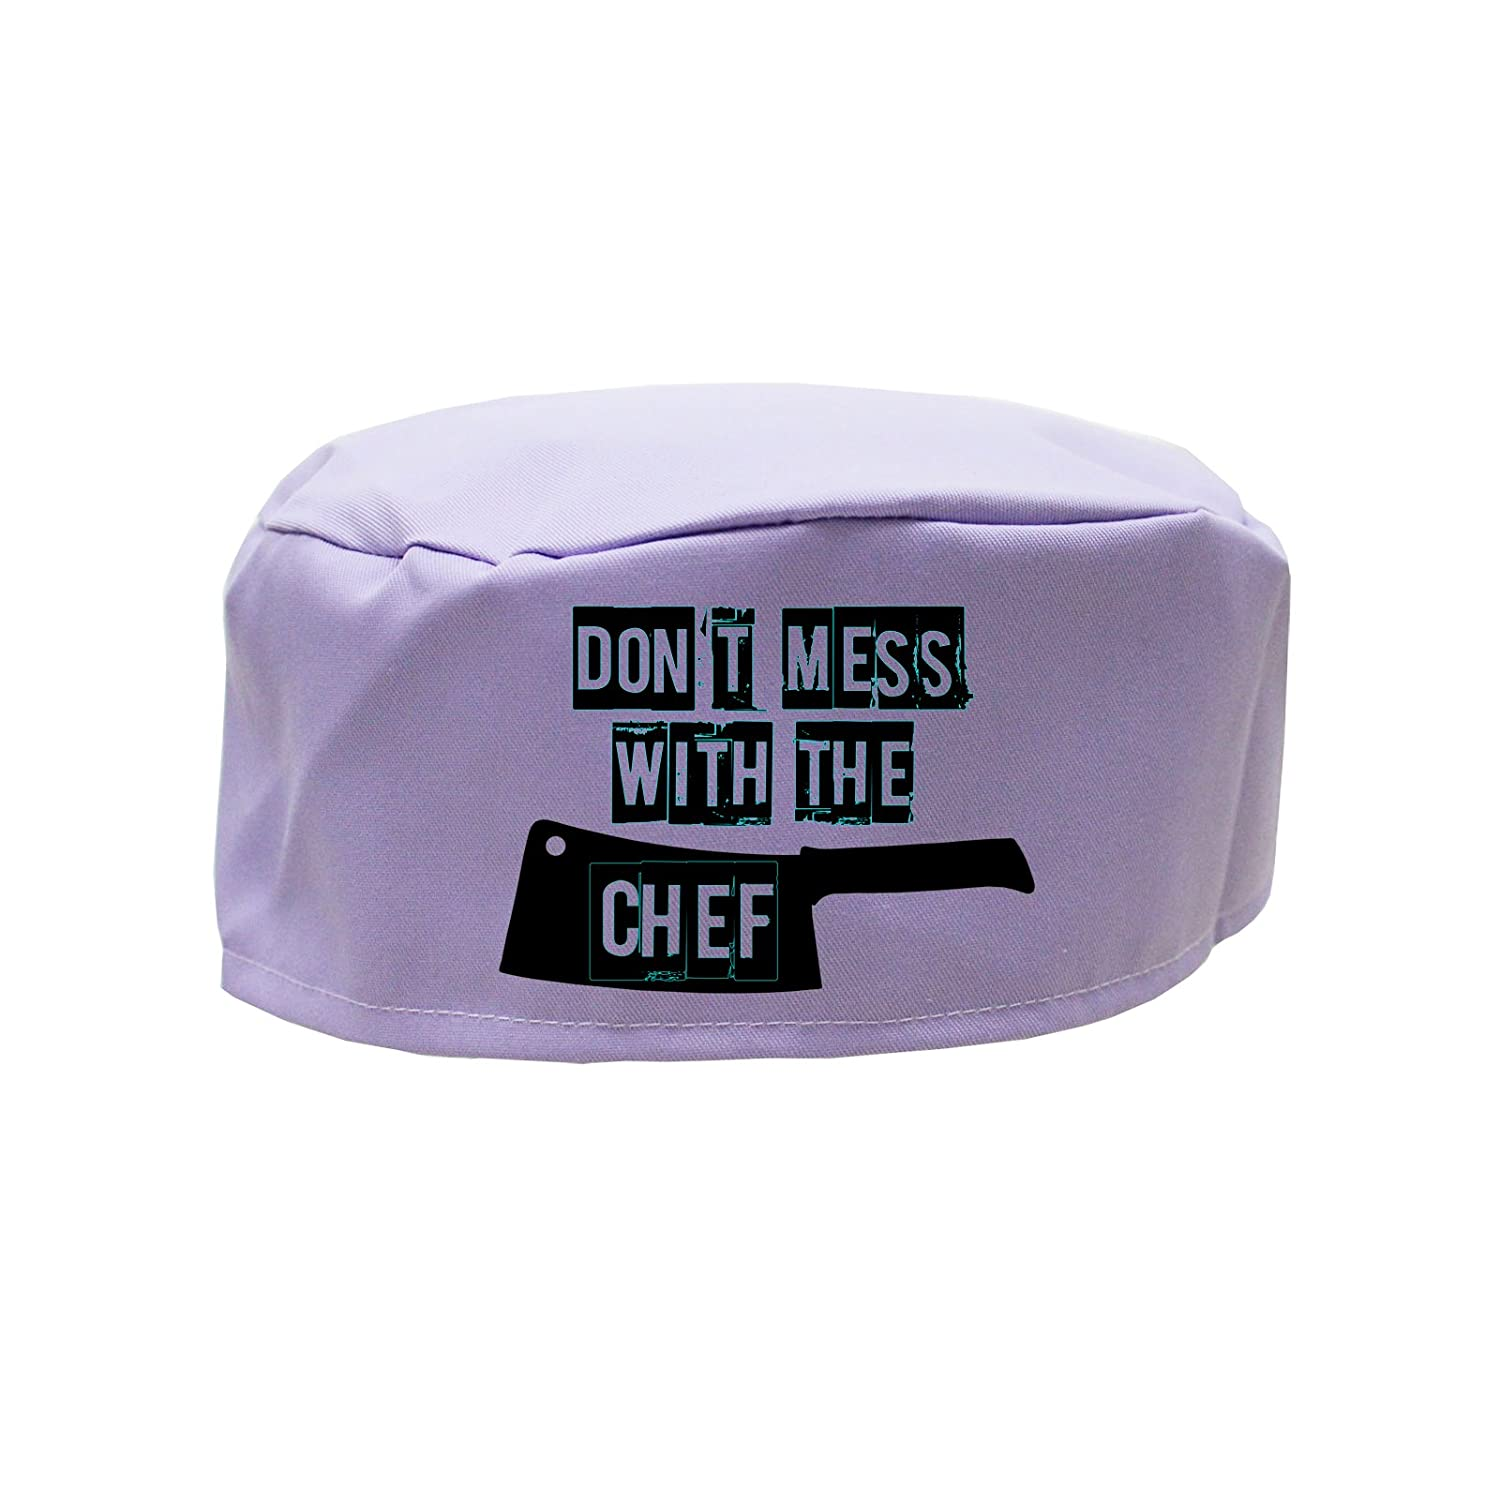 Cappello da chef con scritta in inglese 'Don't mess with the chef' (versione italiana non garantita), spiritosa idea regalo per uomo, donna o bambino, Cotone, Lilac, Adulti cookify